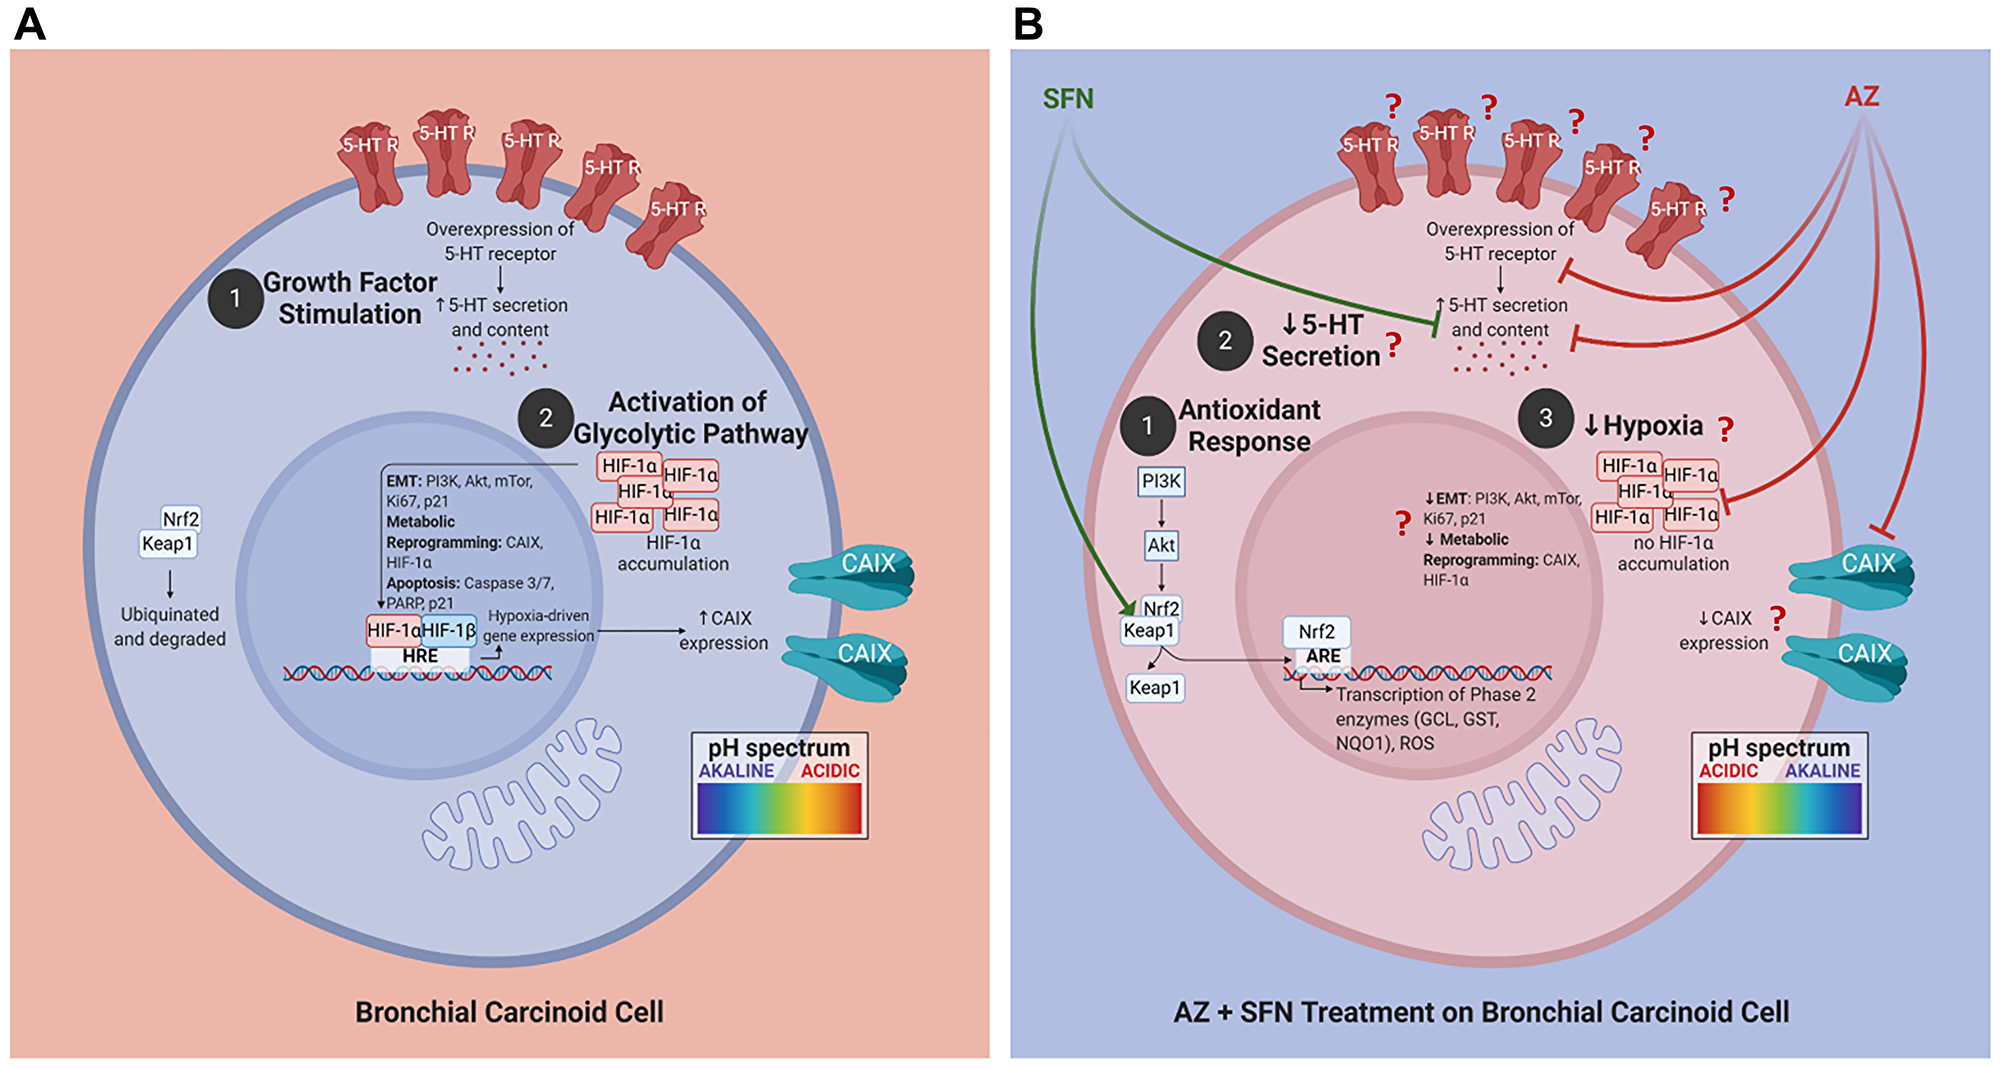 Proposed schema of AZ, SFN, and AZ+SFN targeting the pro-survival pathways in BC.